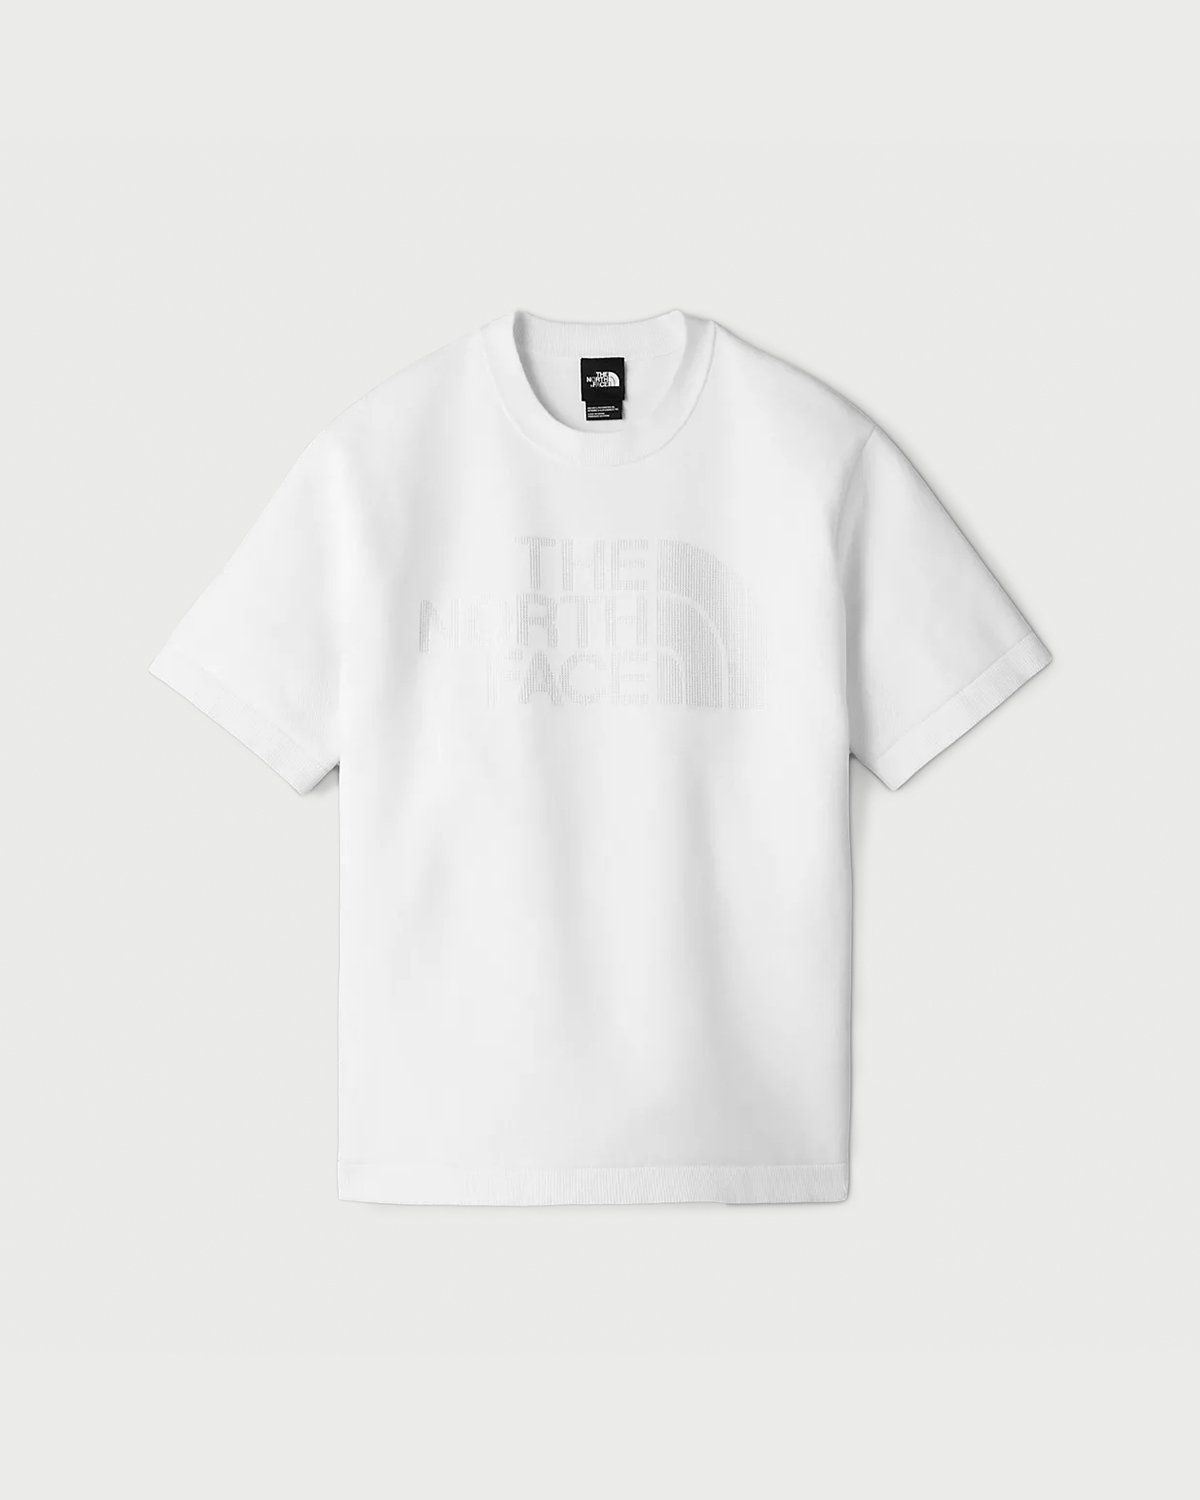 The North Face Black Series - Engineered Knit T-Shirt White - Image 1